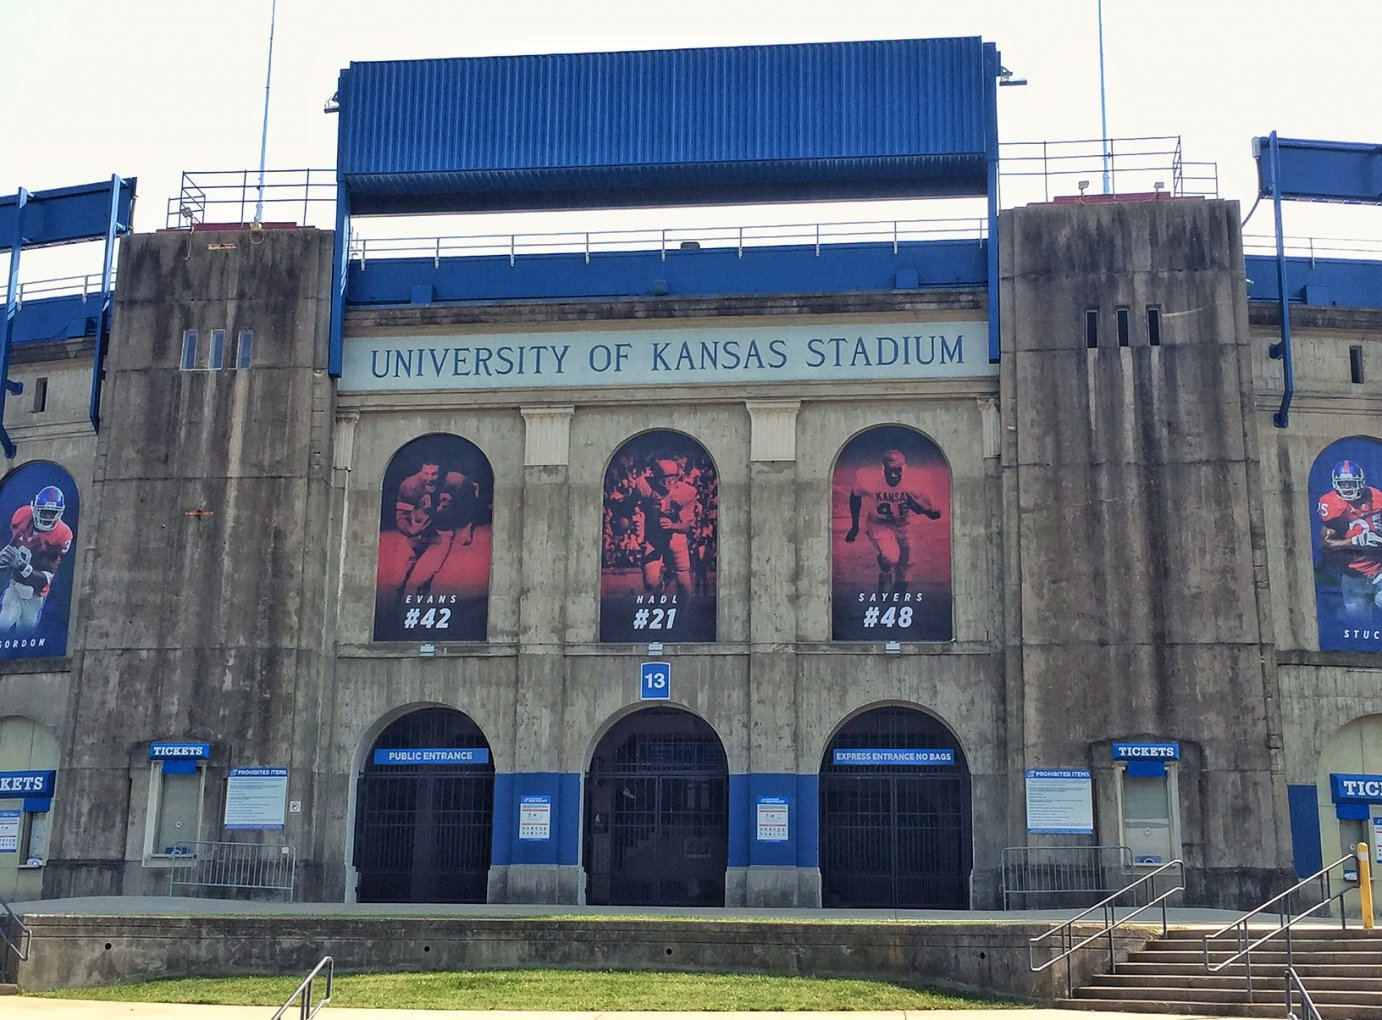 North entrance to Memorial Stadium at the University of Kansas (Photo by J. Schafer)